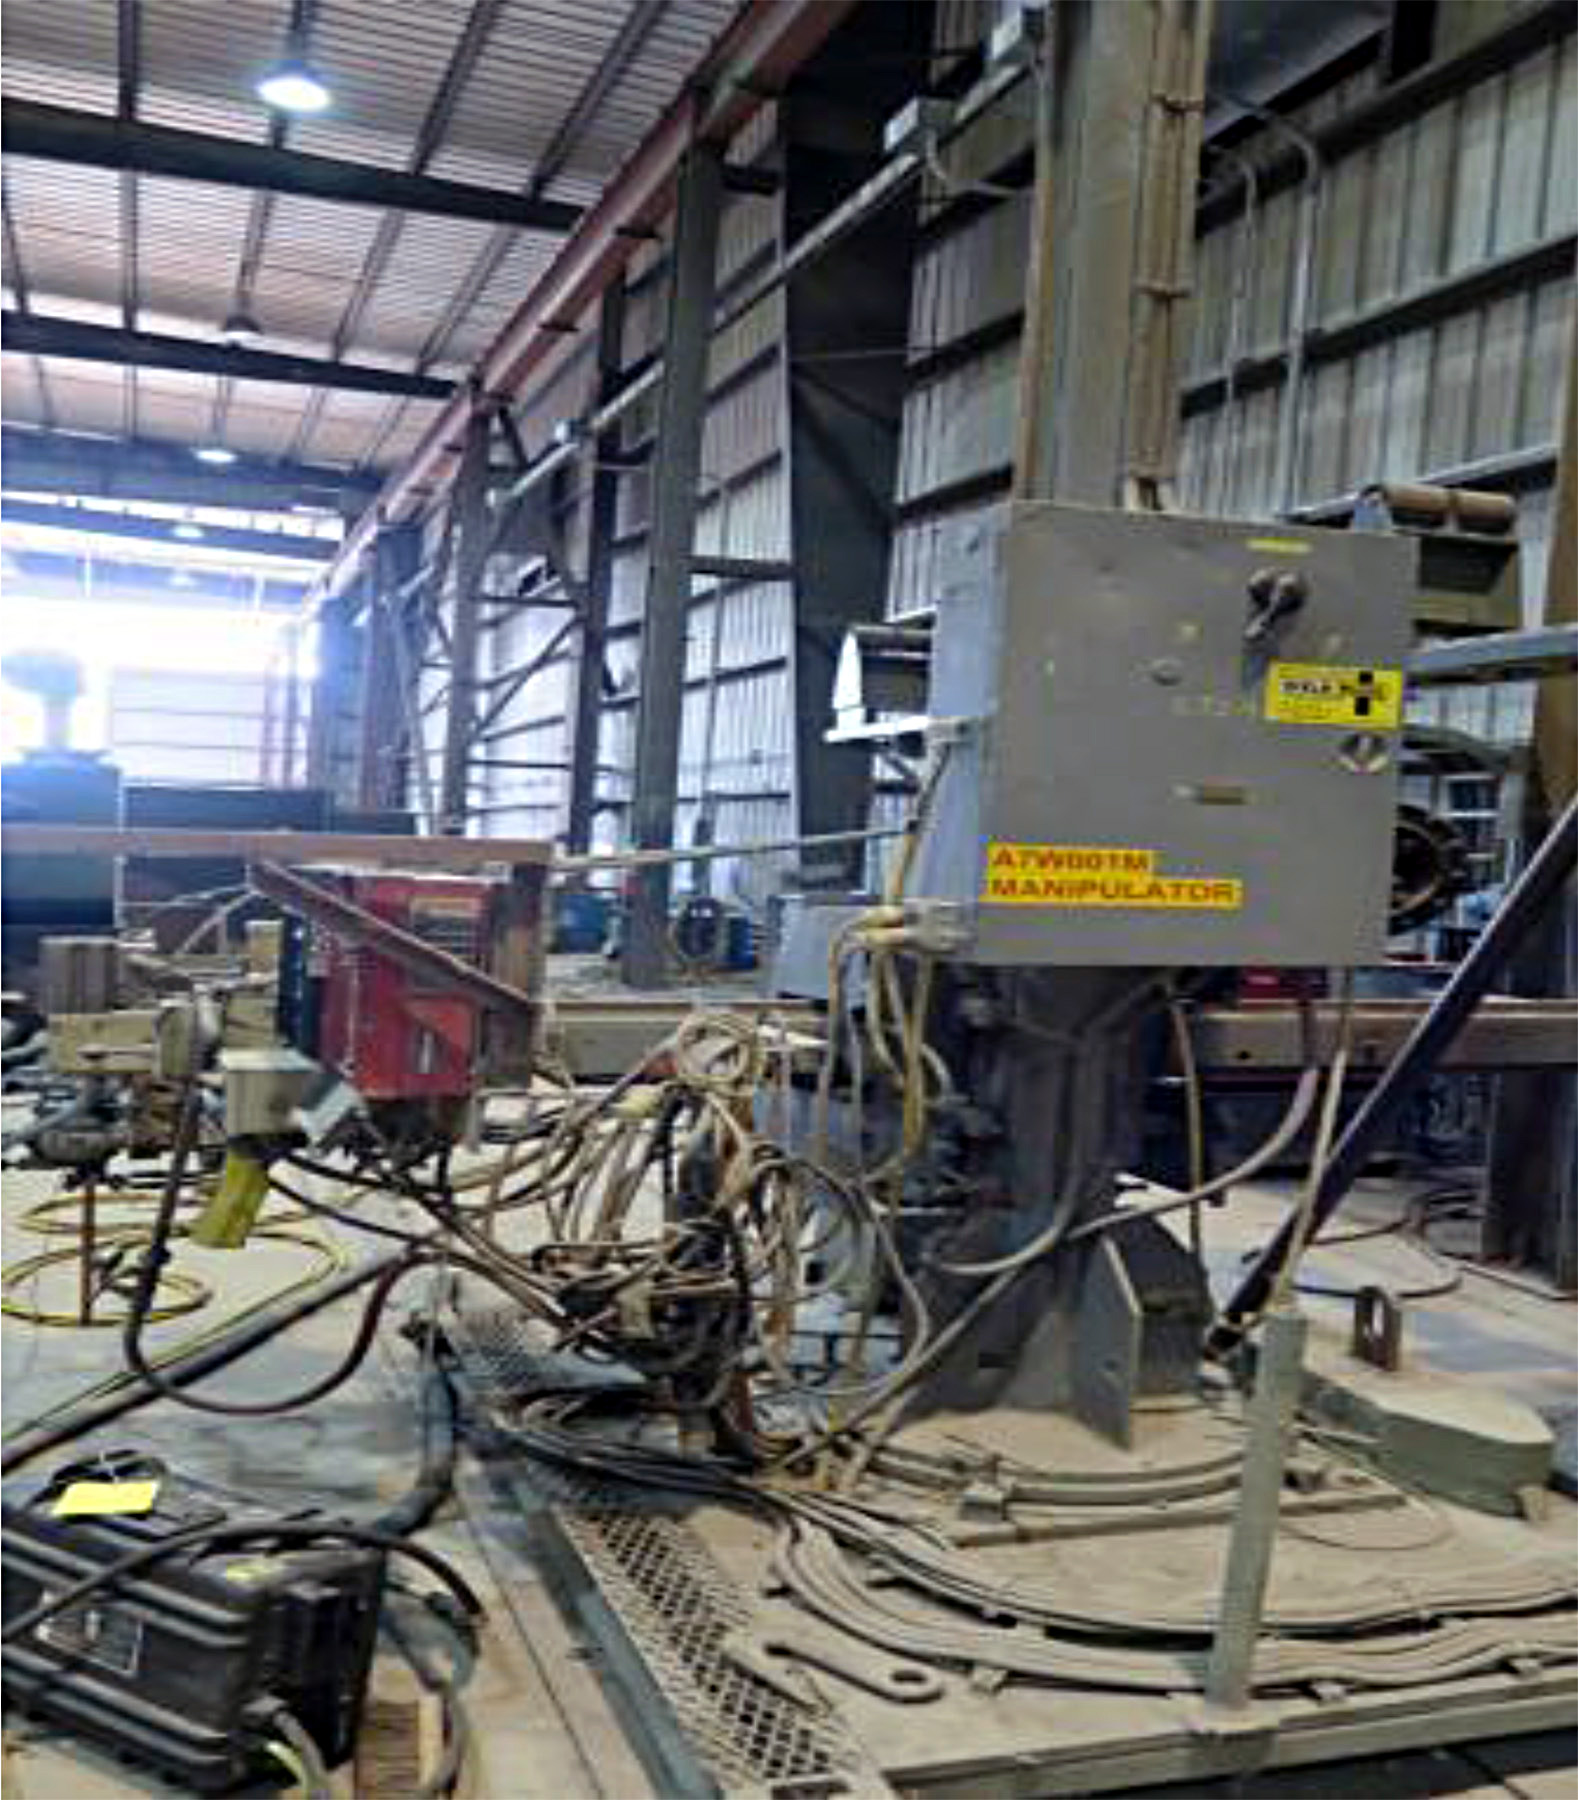 USED, RANSOME MODEL 8X8 WELDING MANIPULATOR ON POWER CART WITH TANDEM ARC SET WELDING SYSTEM